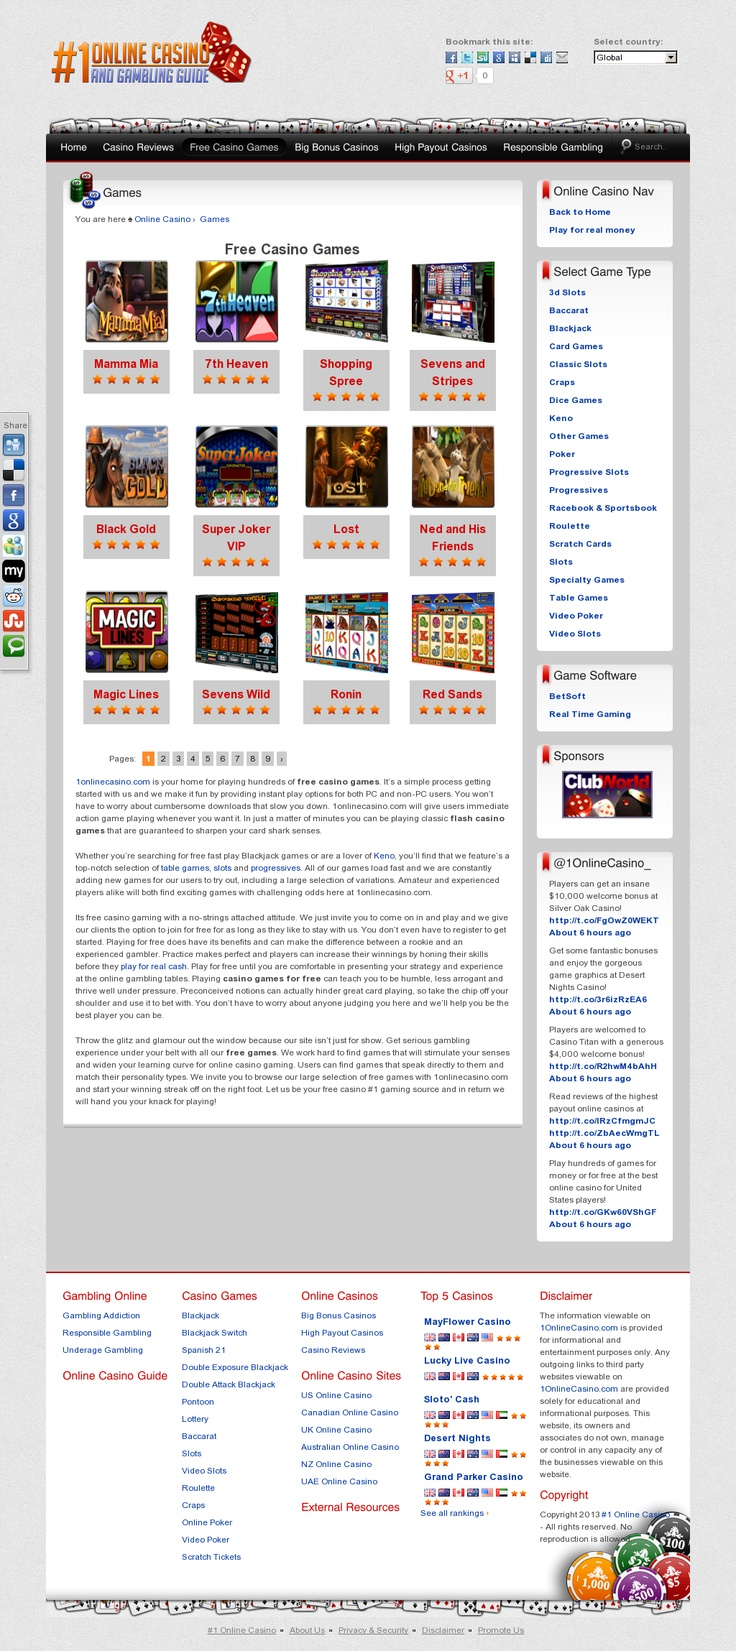 Play hundreds of online casino games for free or for money at www.1OnlineCasino.com